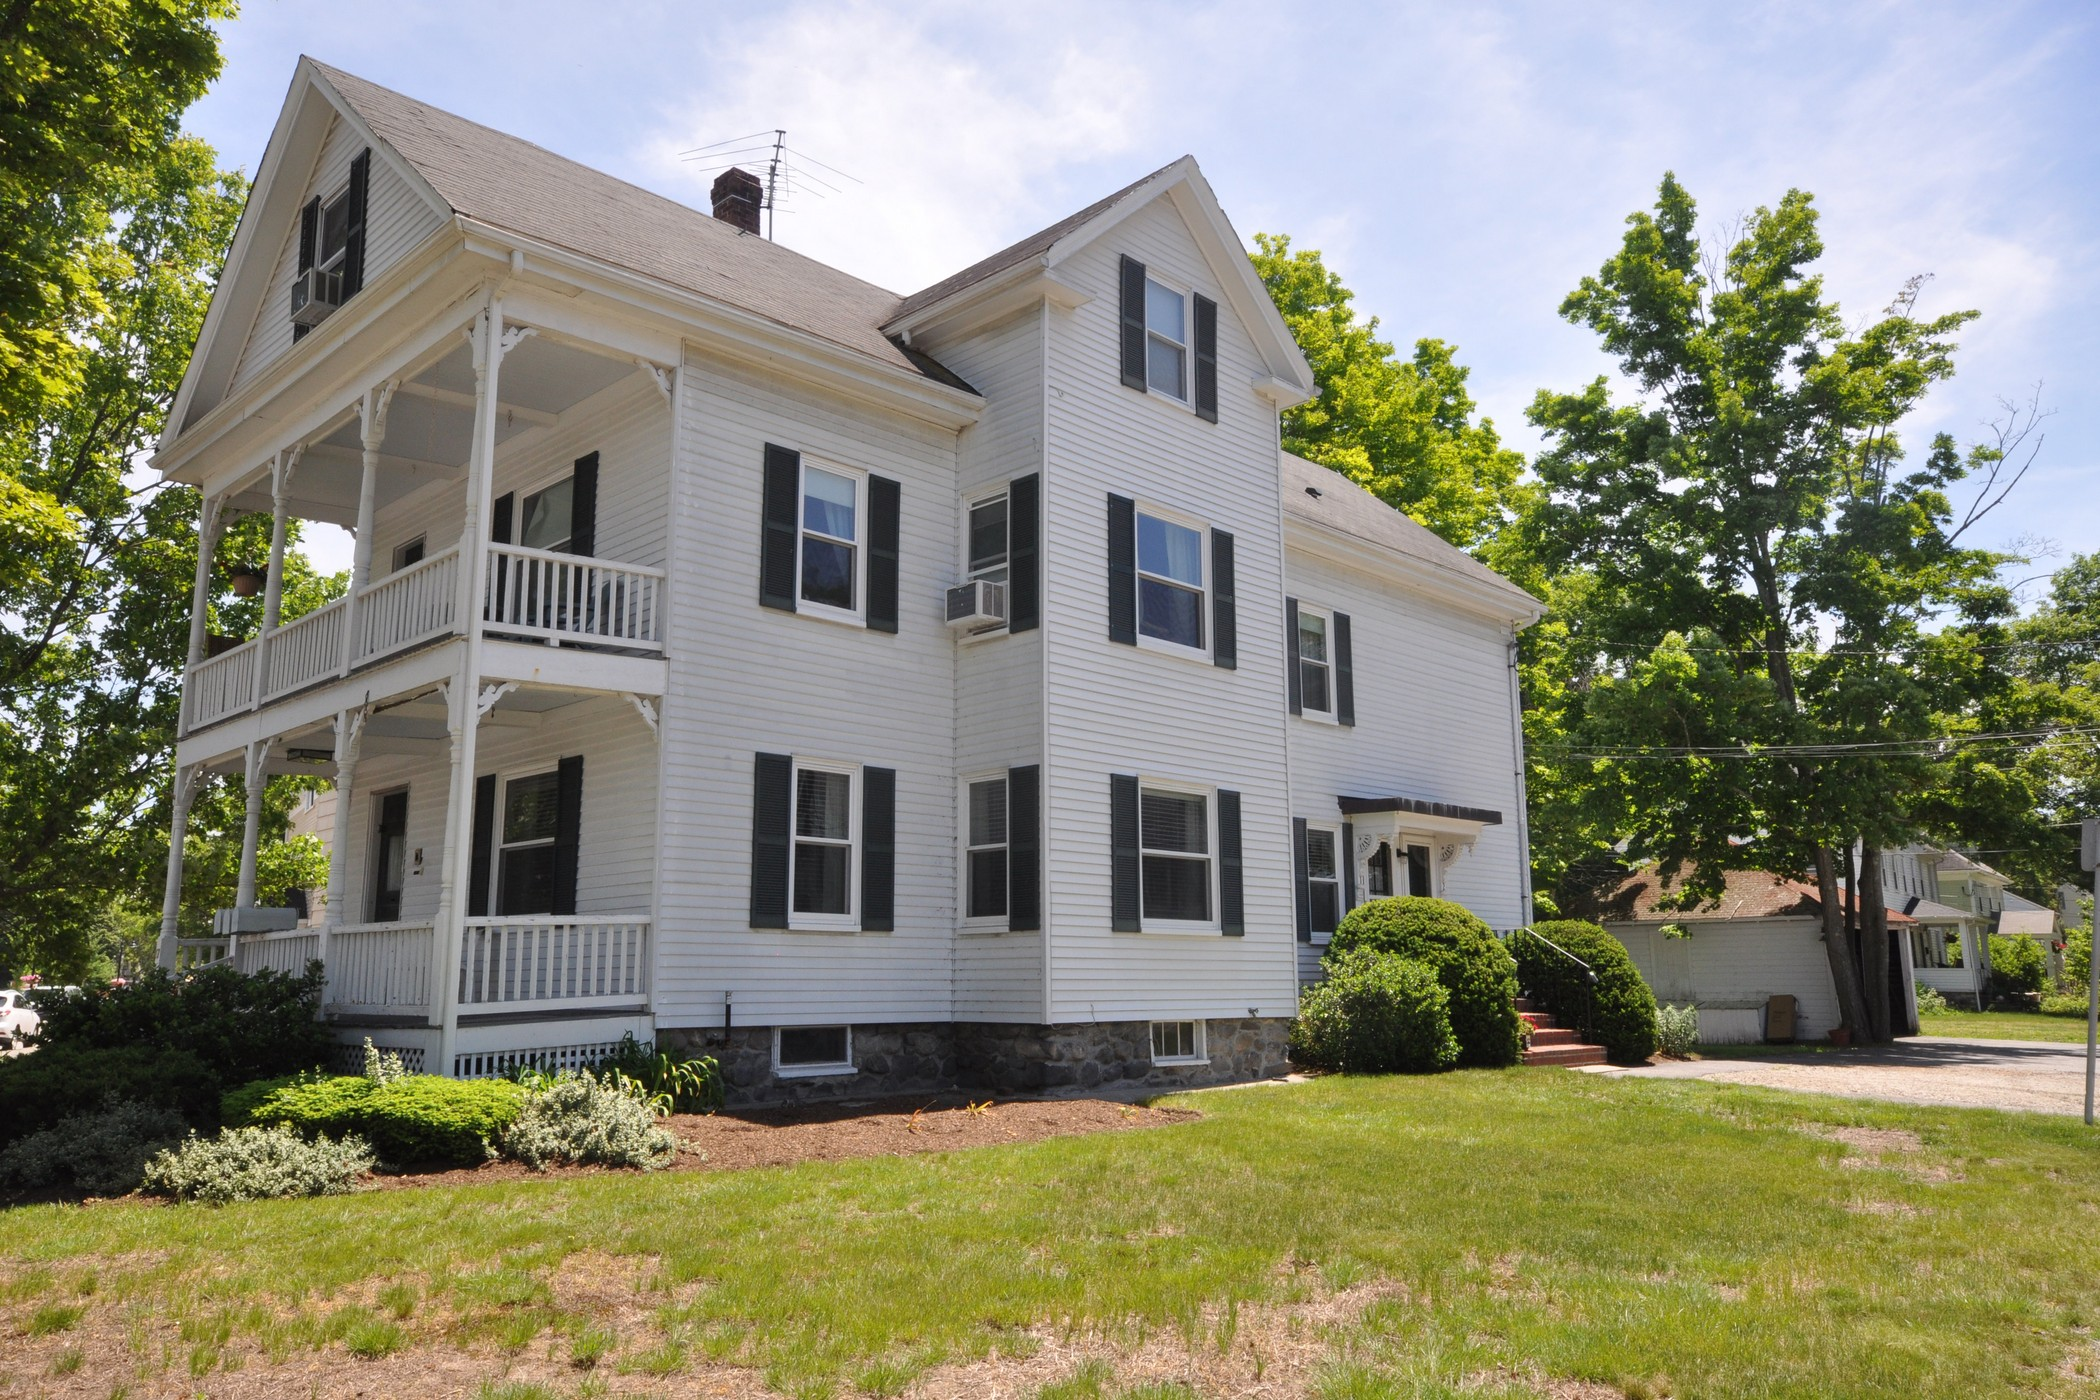 Multi-Family Home for Sale at Three Family in West Concord Center! 17 Laws Brook Rd, Units 1, 2, 3 Concord, Massachusetts, 01742 United States